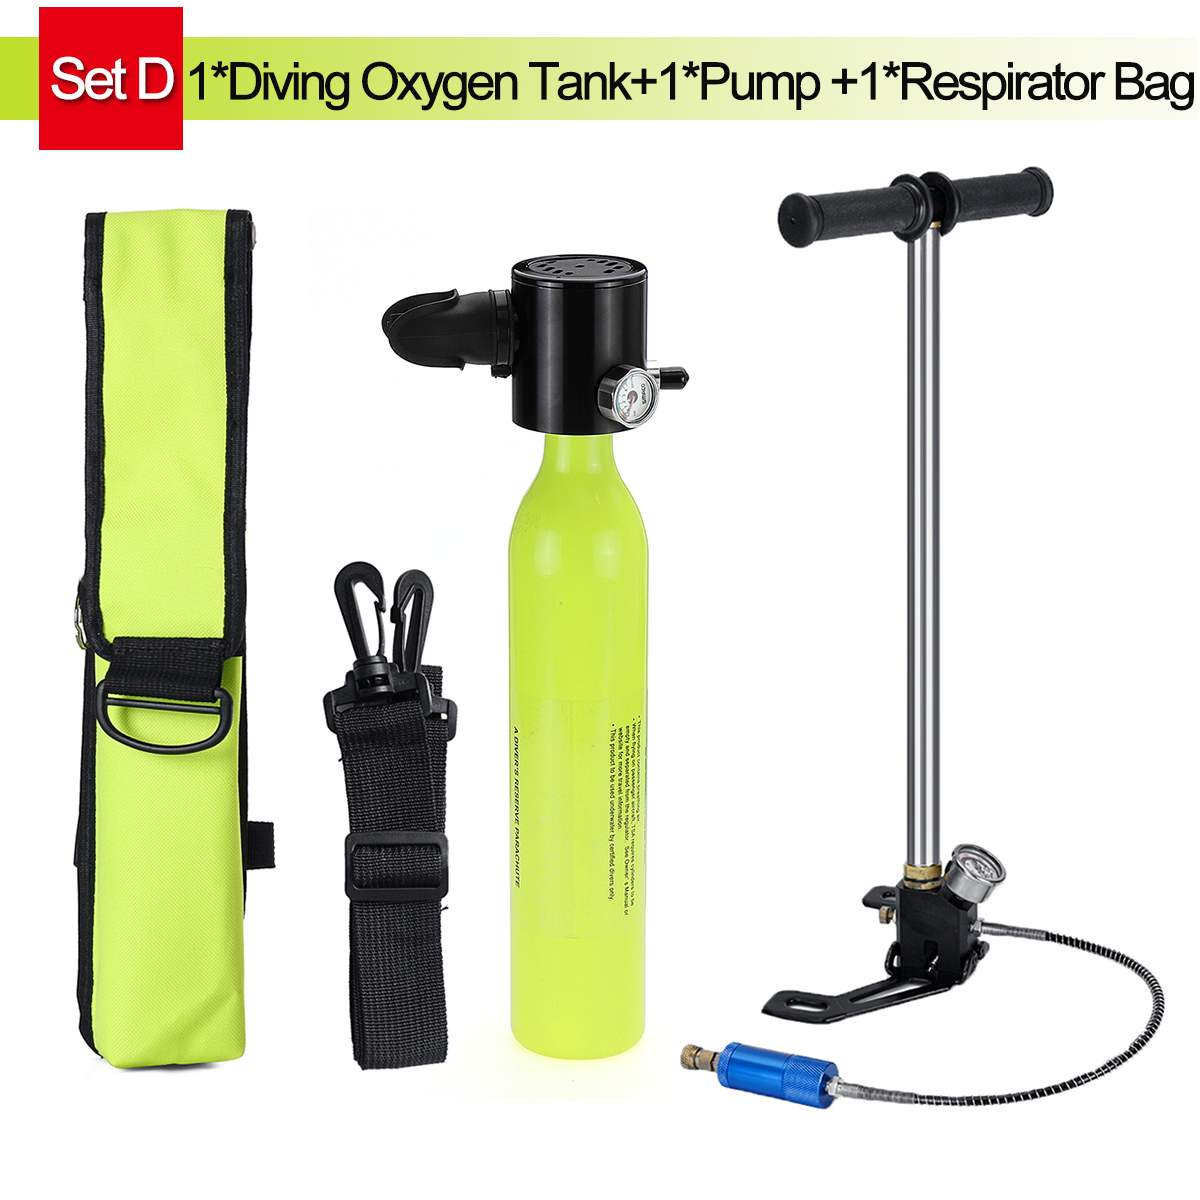 SMACO 0.5L Mini Scuba Oxygen Cylinder Air Tanks Diving Equipment For Snorkeling Underwater Breathing With Pump Respirator Bag